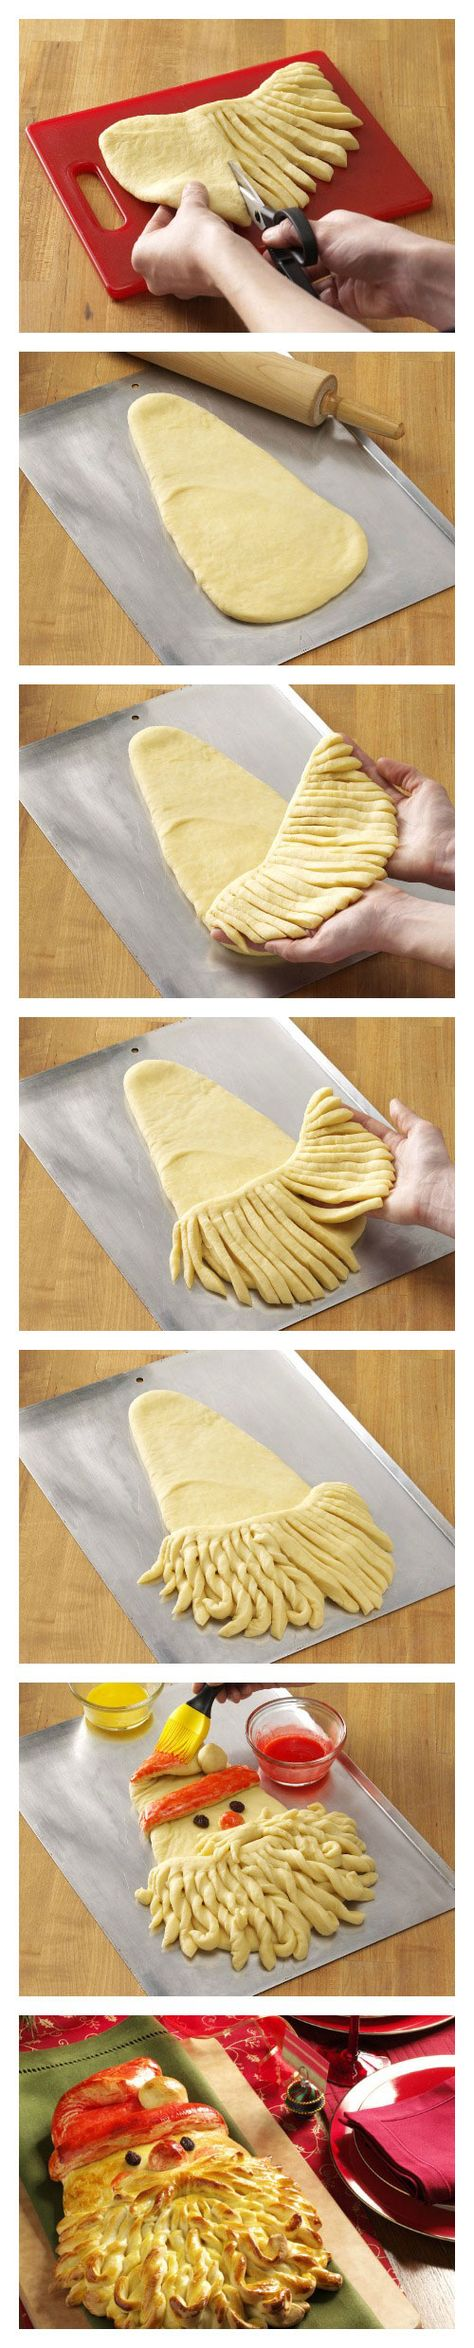 How to Make Santa Bread from Taste of Home #food #yummy #delicious